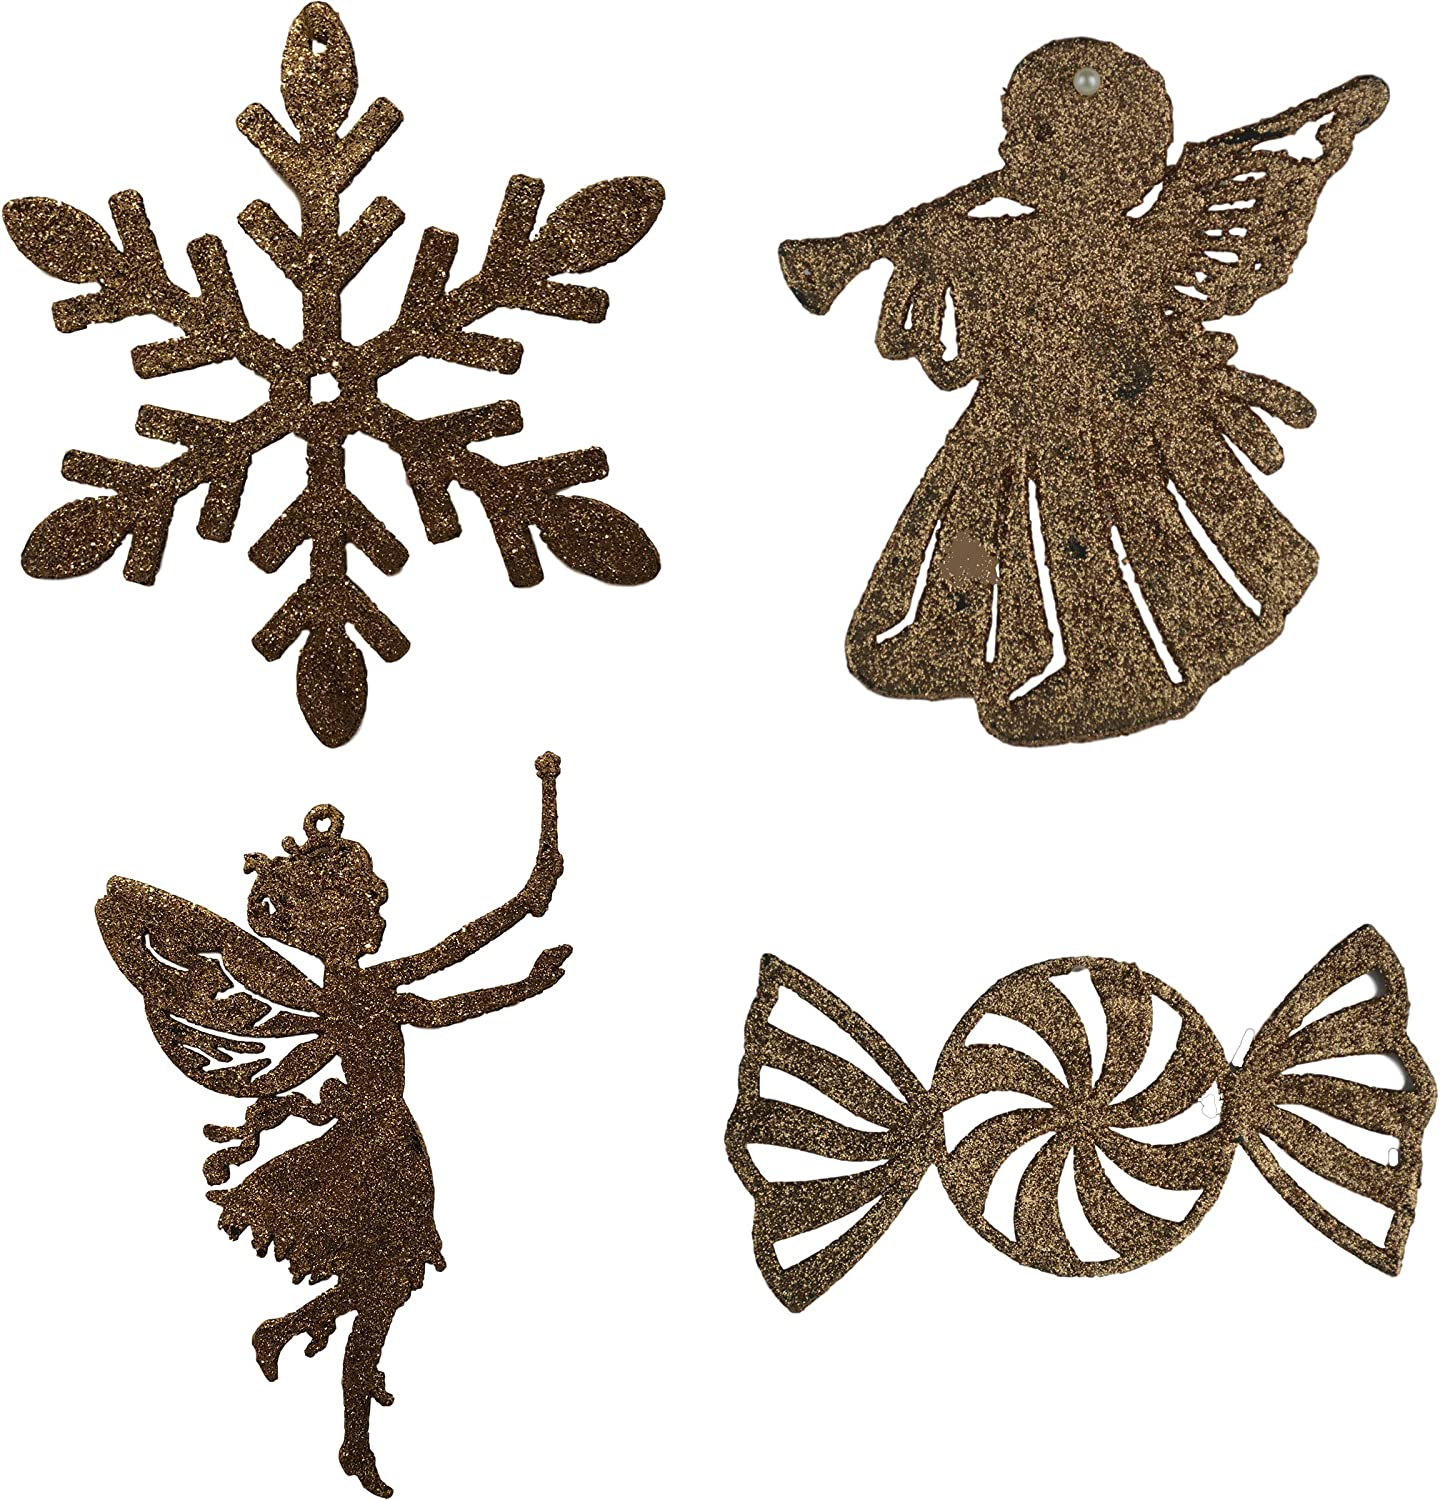 Candy and Snowflake Holiday Home Decoration 24 Pack Set Trumpeting Angel Rose Gold Glitter Christmas Tree Ornaments Fairy